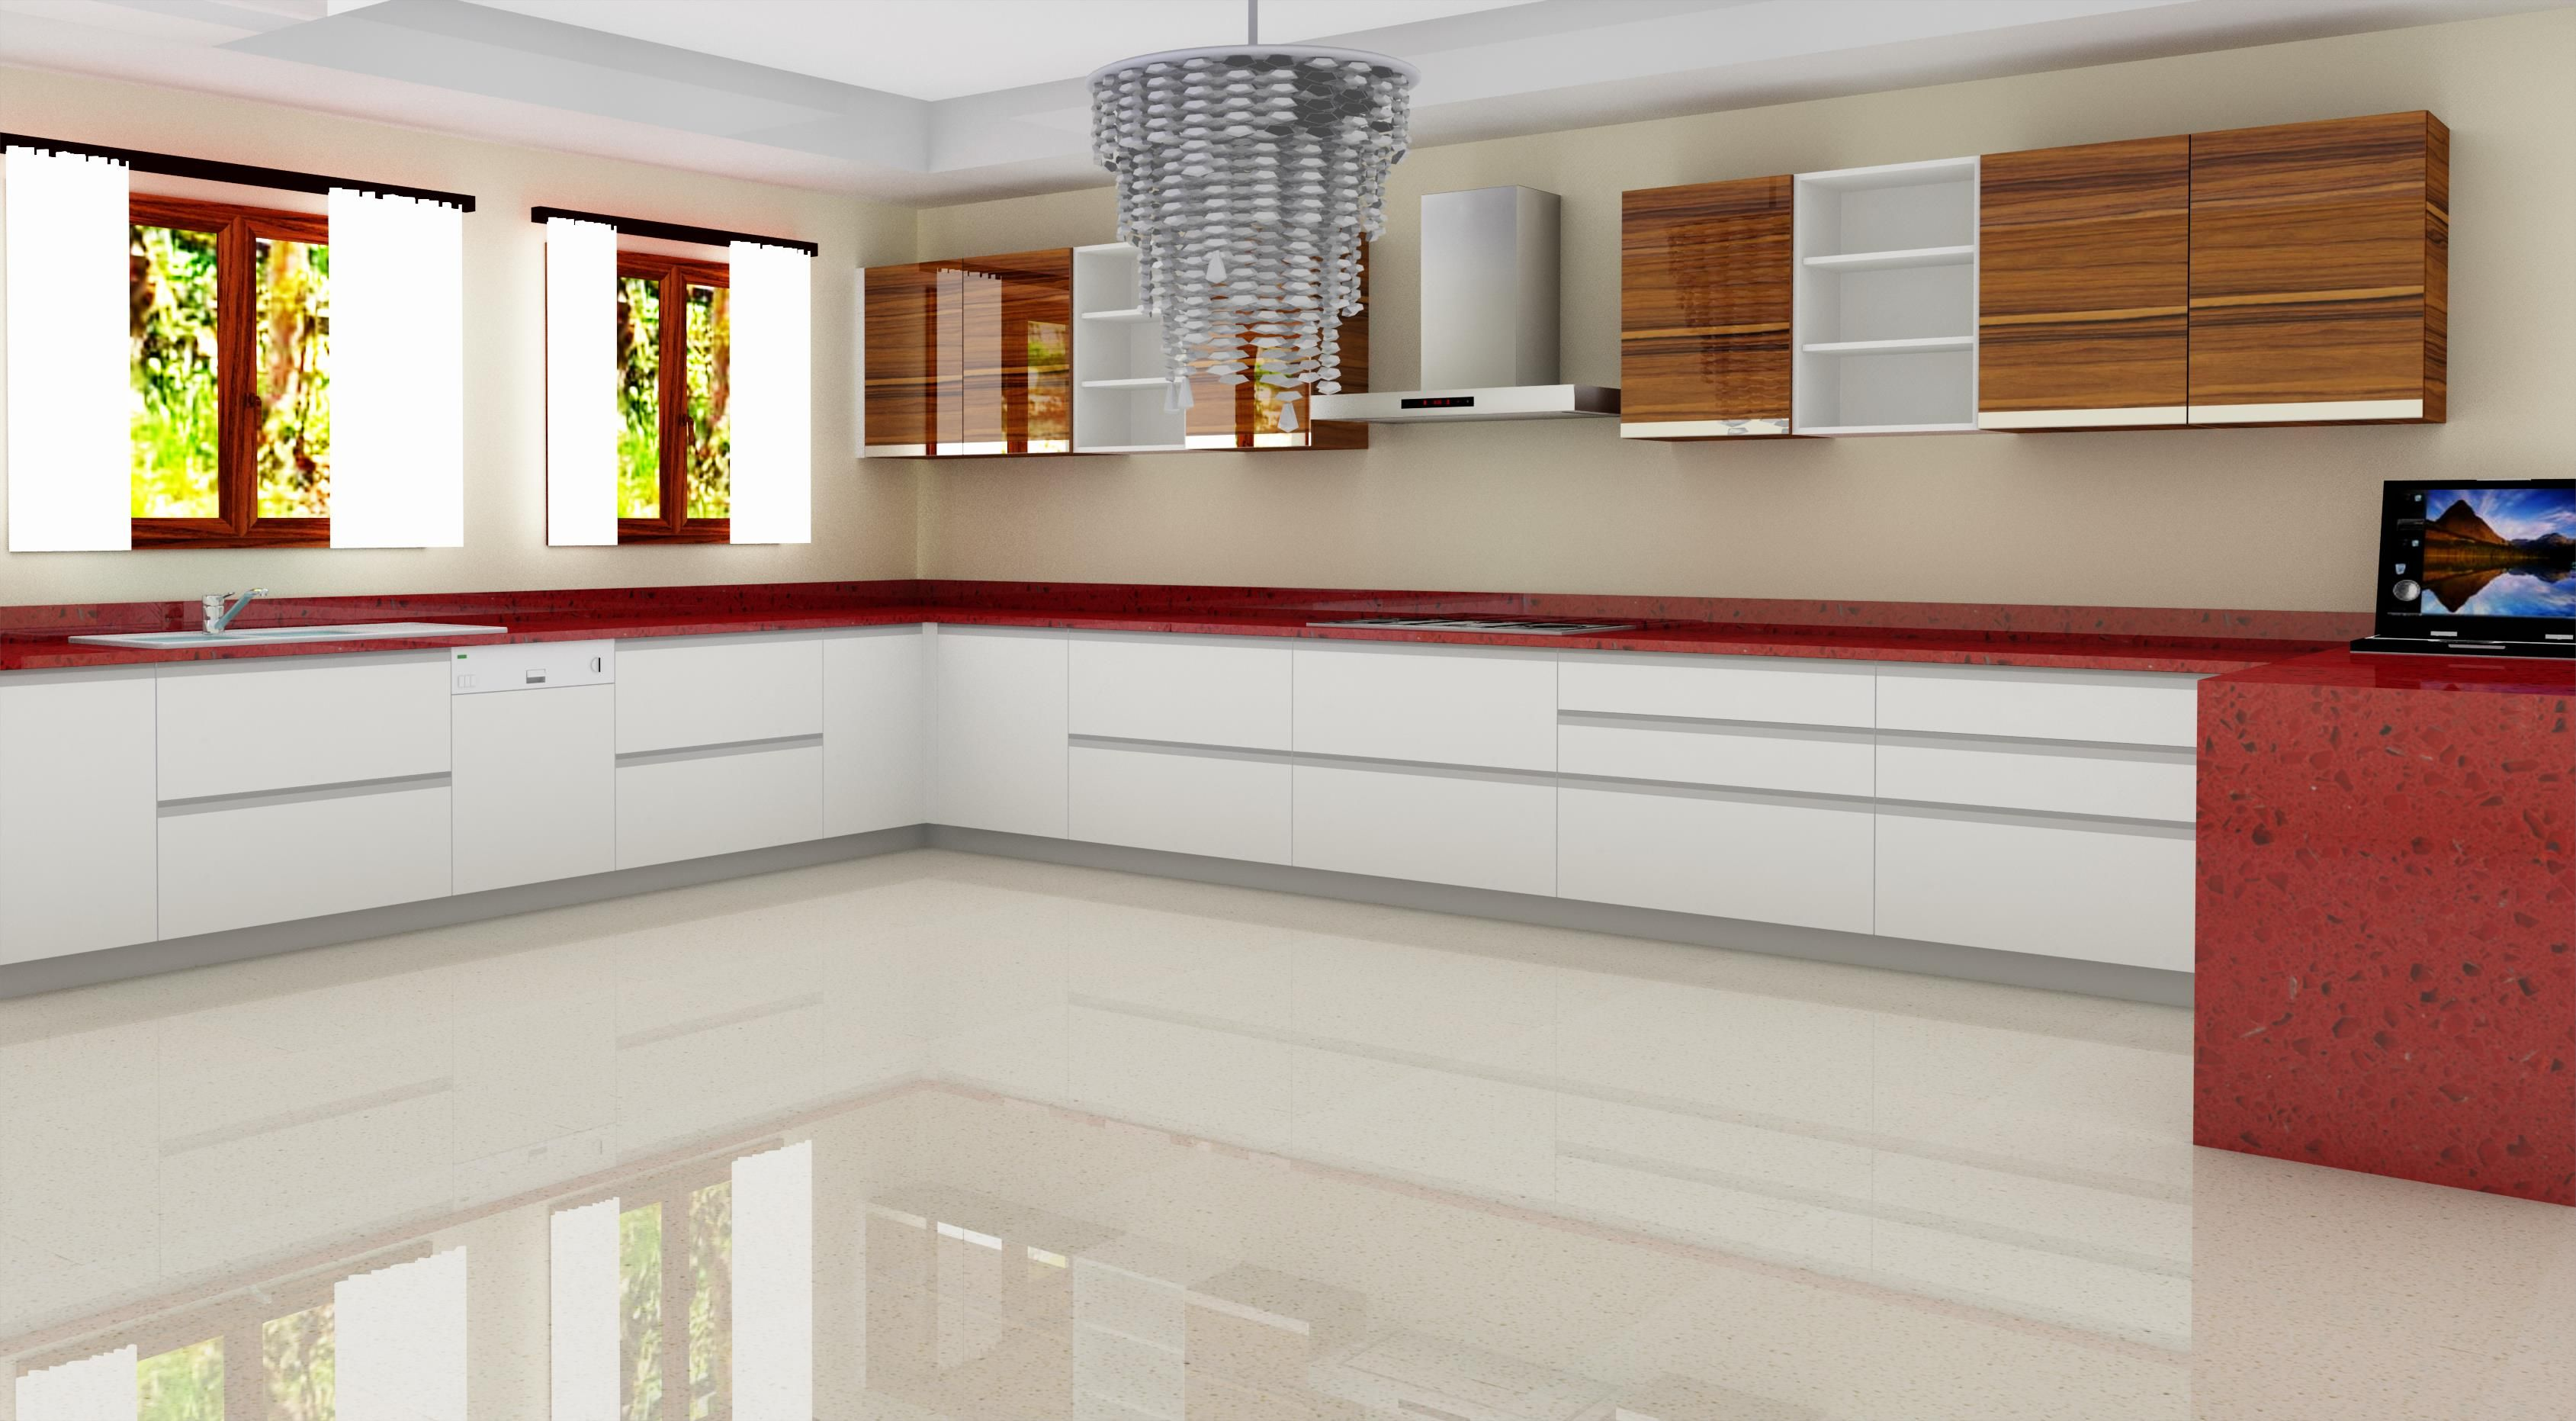 Kitchen Design Ideas By Exen Limited Nairobi Kenya Beautiful Kitchen Cabinets Kitchen Designs Layout Interior Design Kitchen